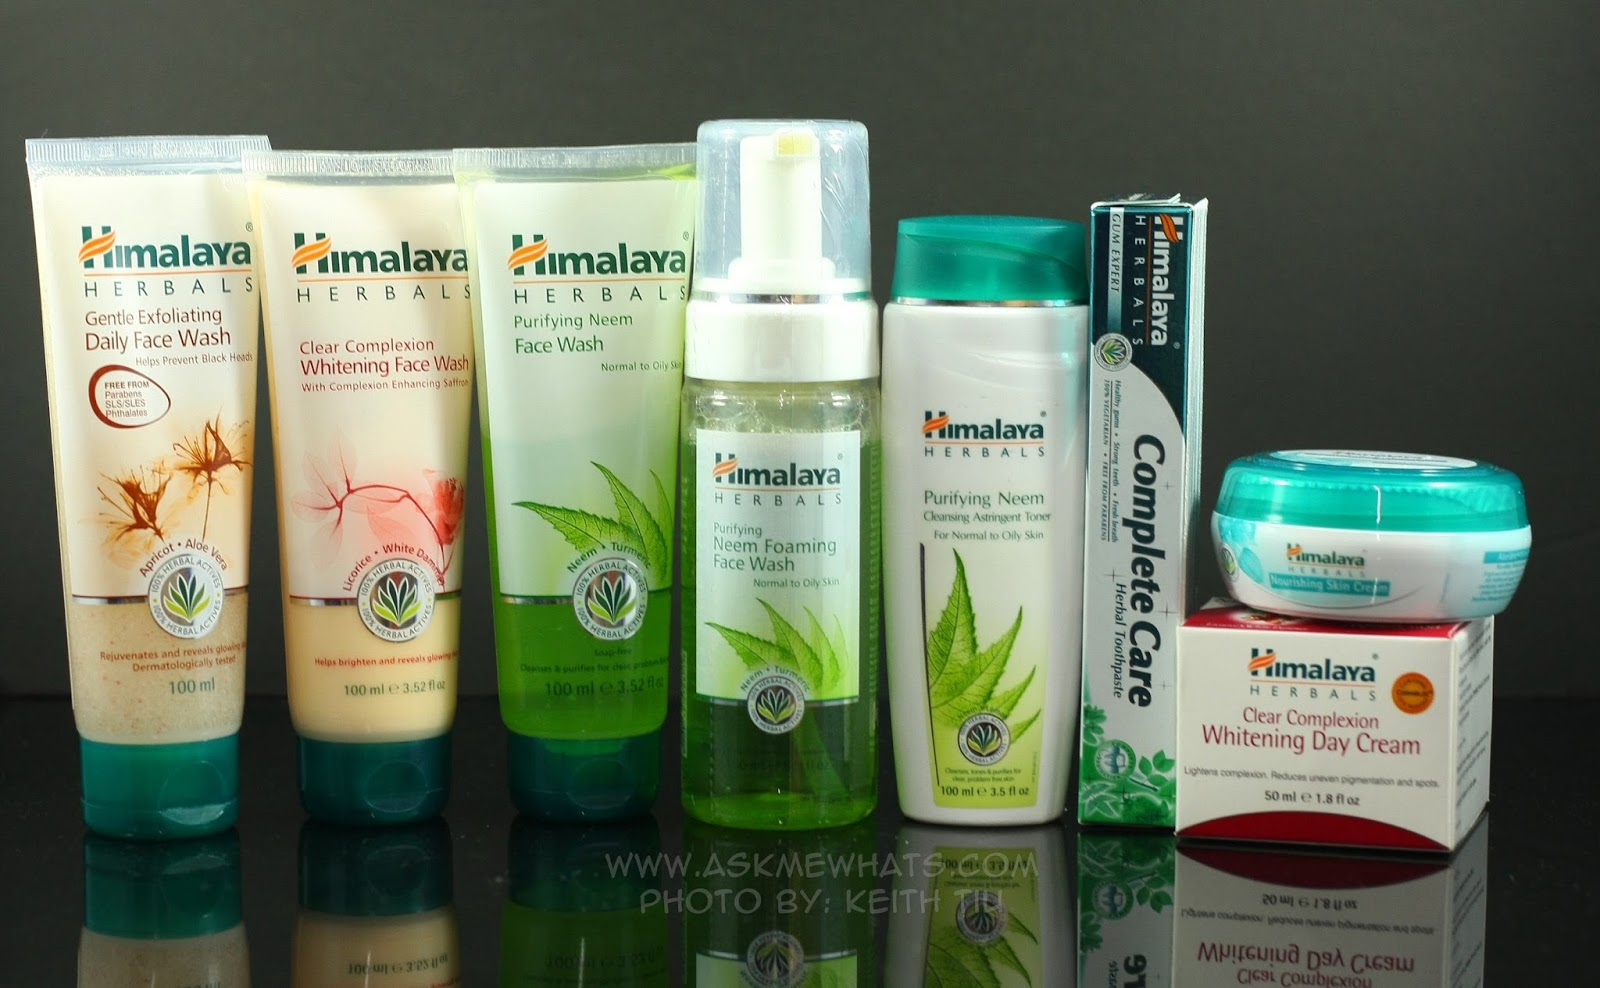 Himalaya+Herbals+products.JPG